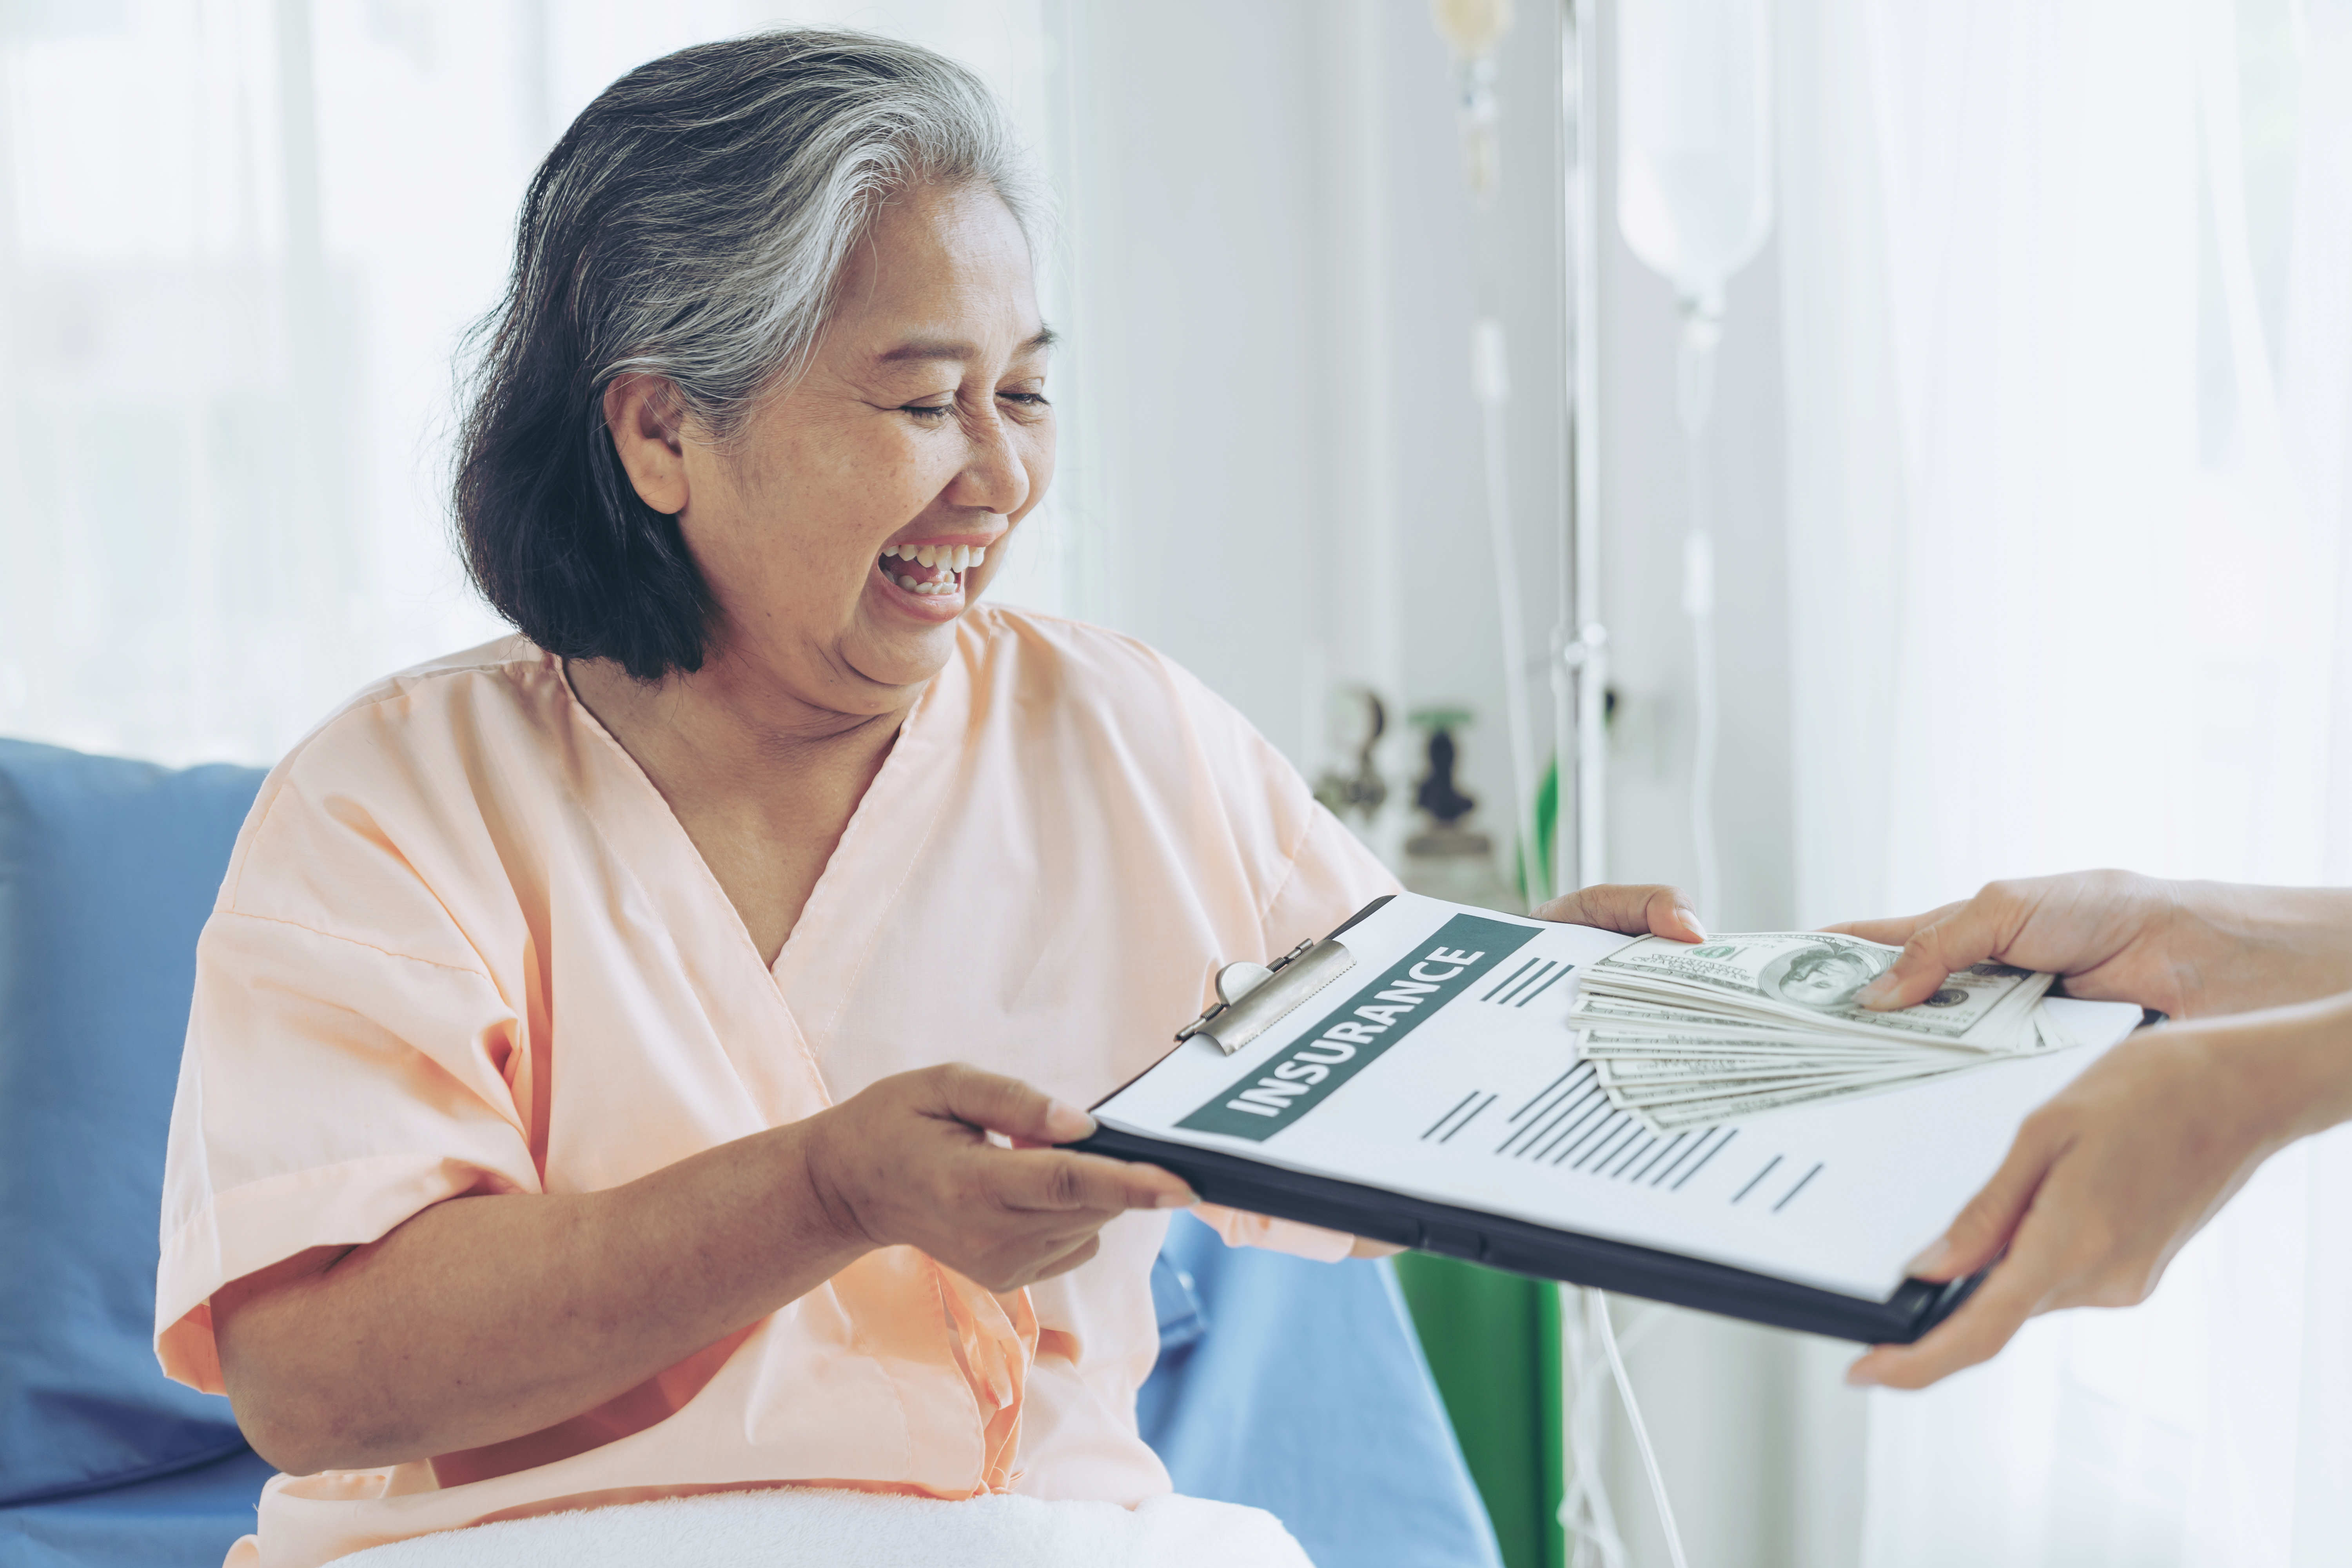 elderly-patients-injury-woman-patient-bed-hospital-holding-us-dollar-bills-feel-happy-from-getting-benefits-life-health-money-from-insurance-companies-content-image